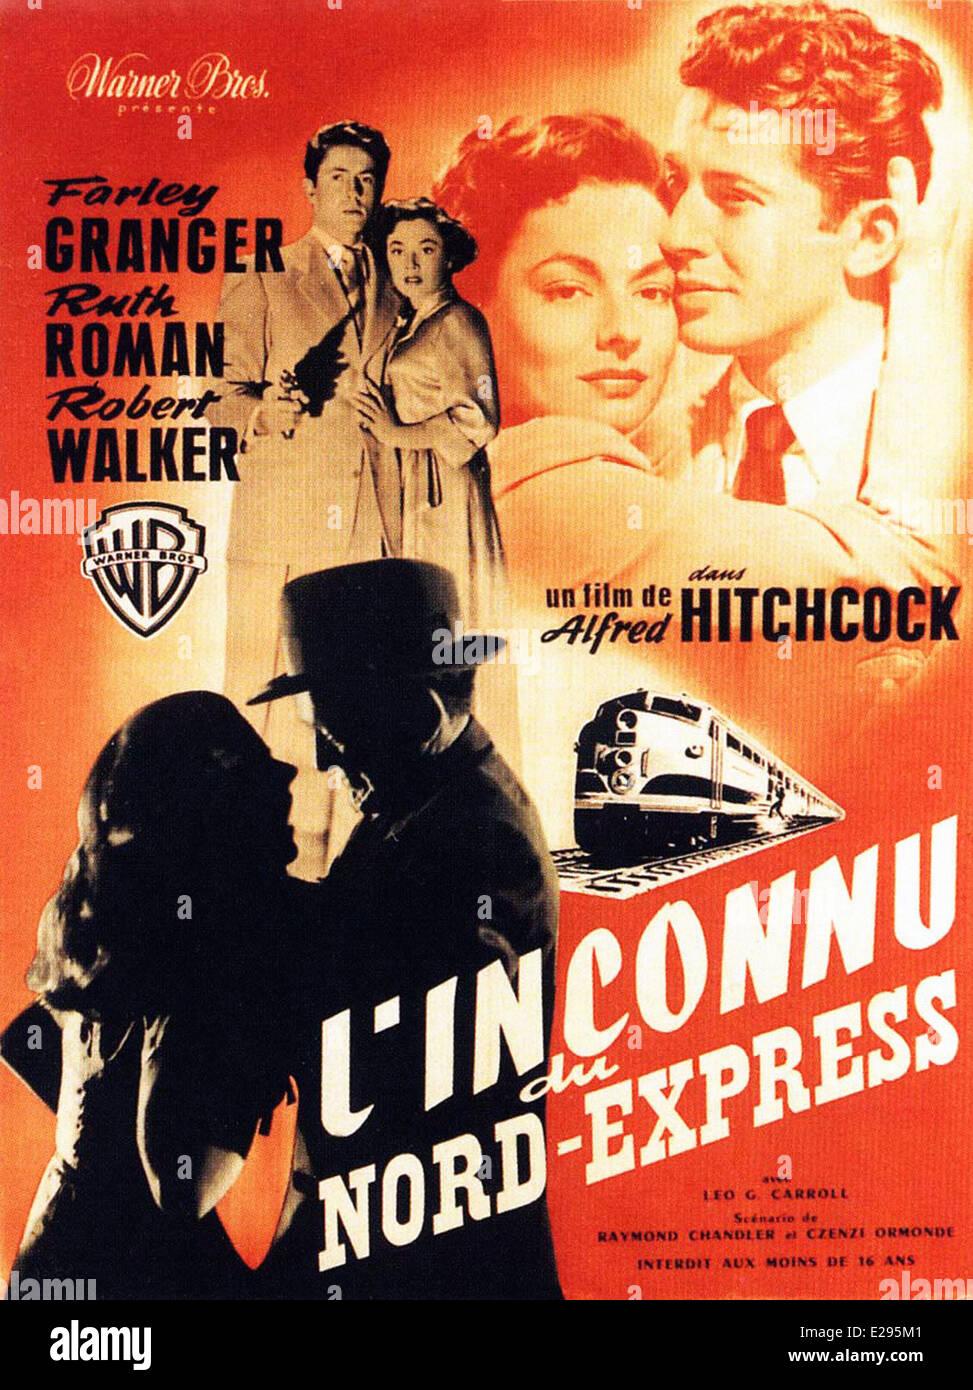 the classic cinema in the movie strangers on a train Still in the opening scenes, obsequious bruno (robert walker) introduces his diabolical idea to guy (farley granger), in alfred hitchcock's strangers on a train , 1951, from the novel by patricia highsmith.